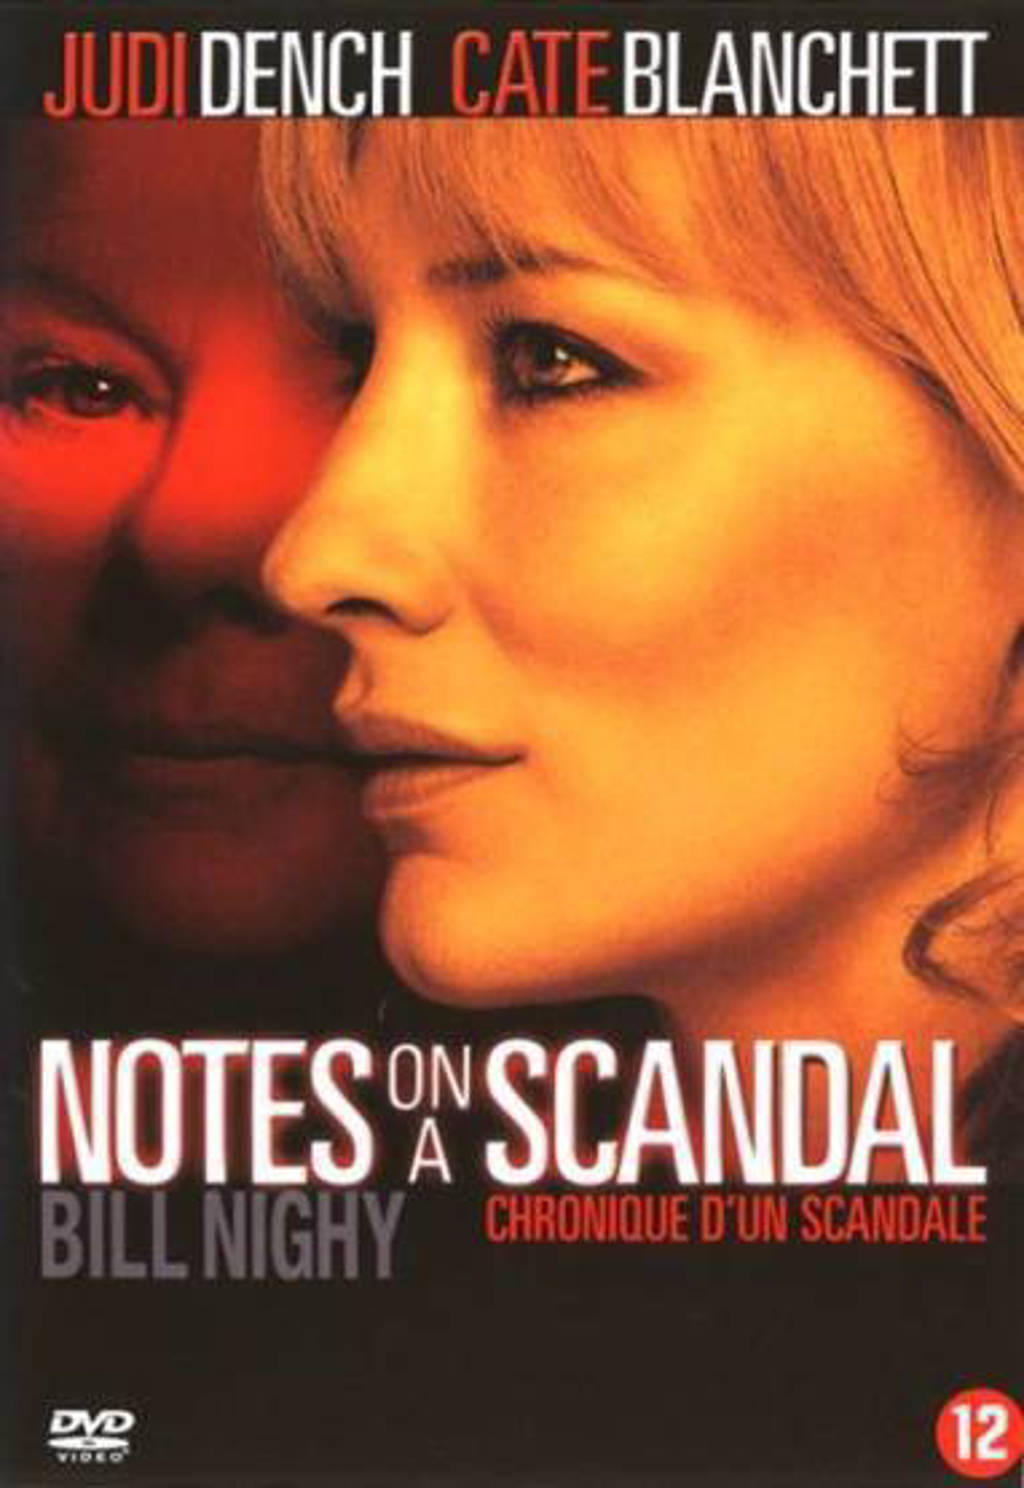 Notes on a scandal (DVD)